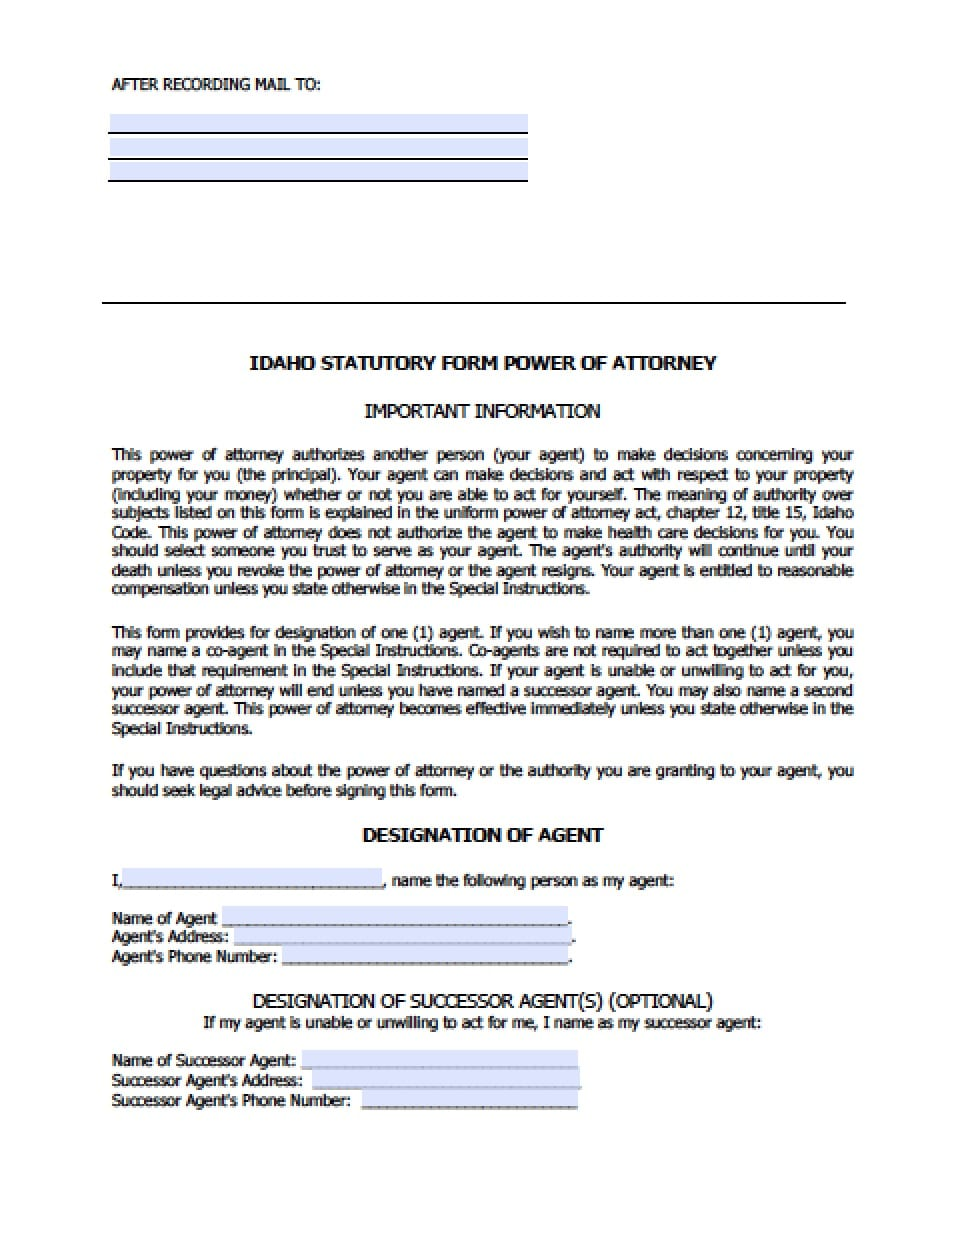 Idaho Real Estate ONLY Power Of Attorney Form Power Of Attorney - Idaho legal forms